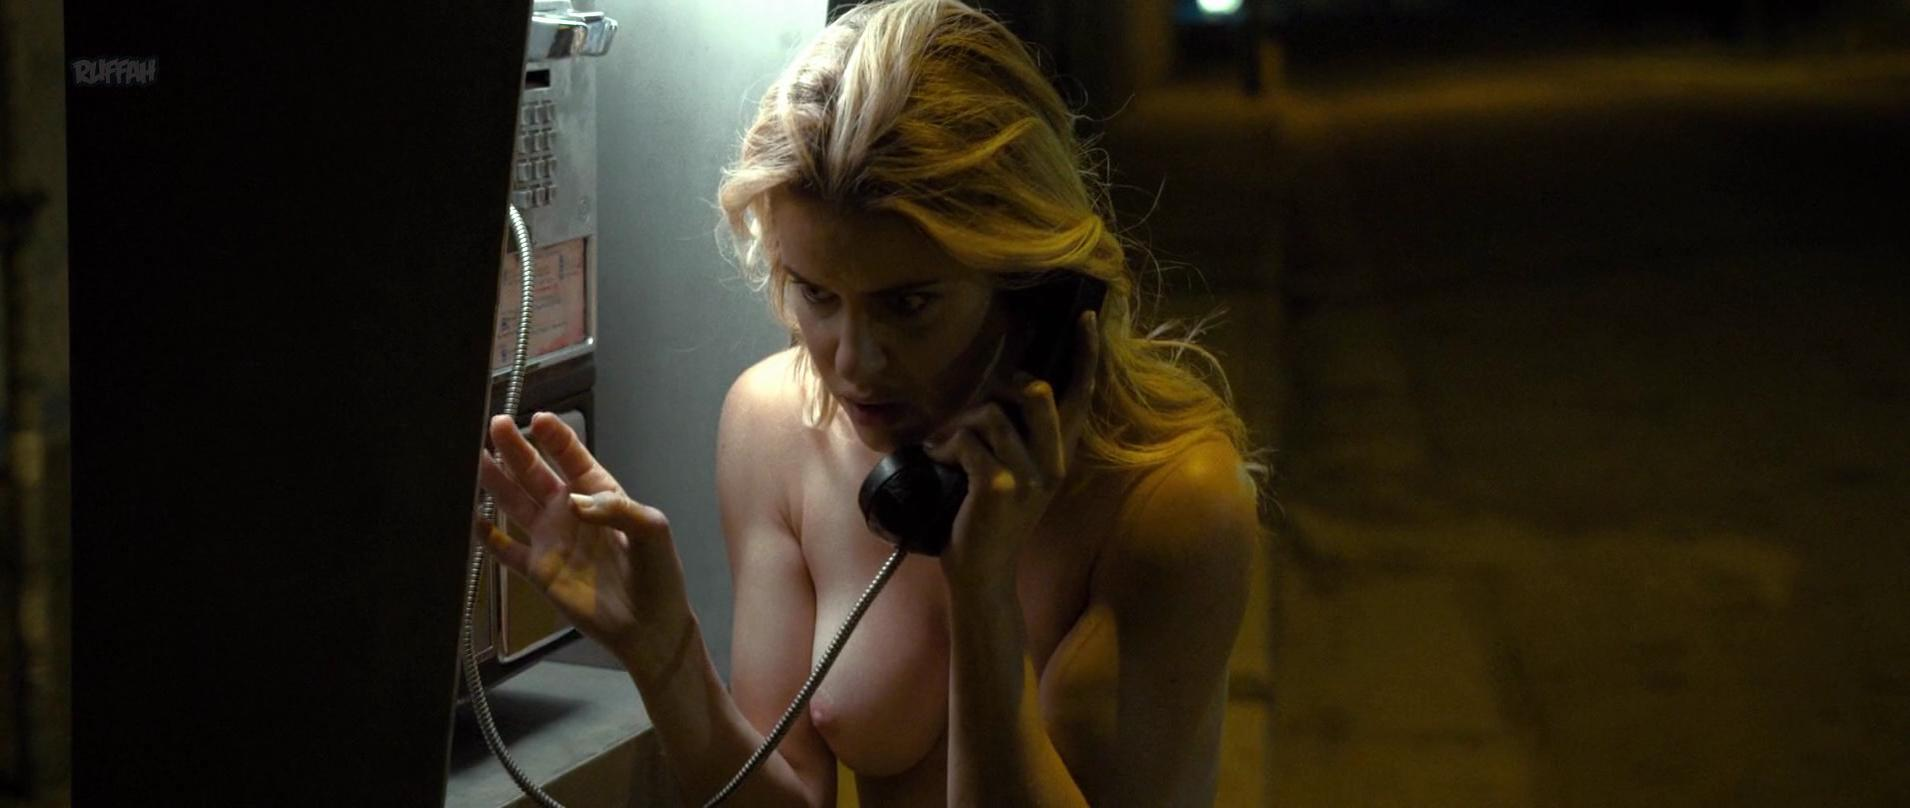 Elisabeth Hower nude - Escape Room (2018)